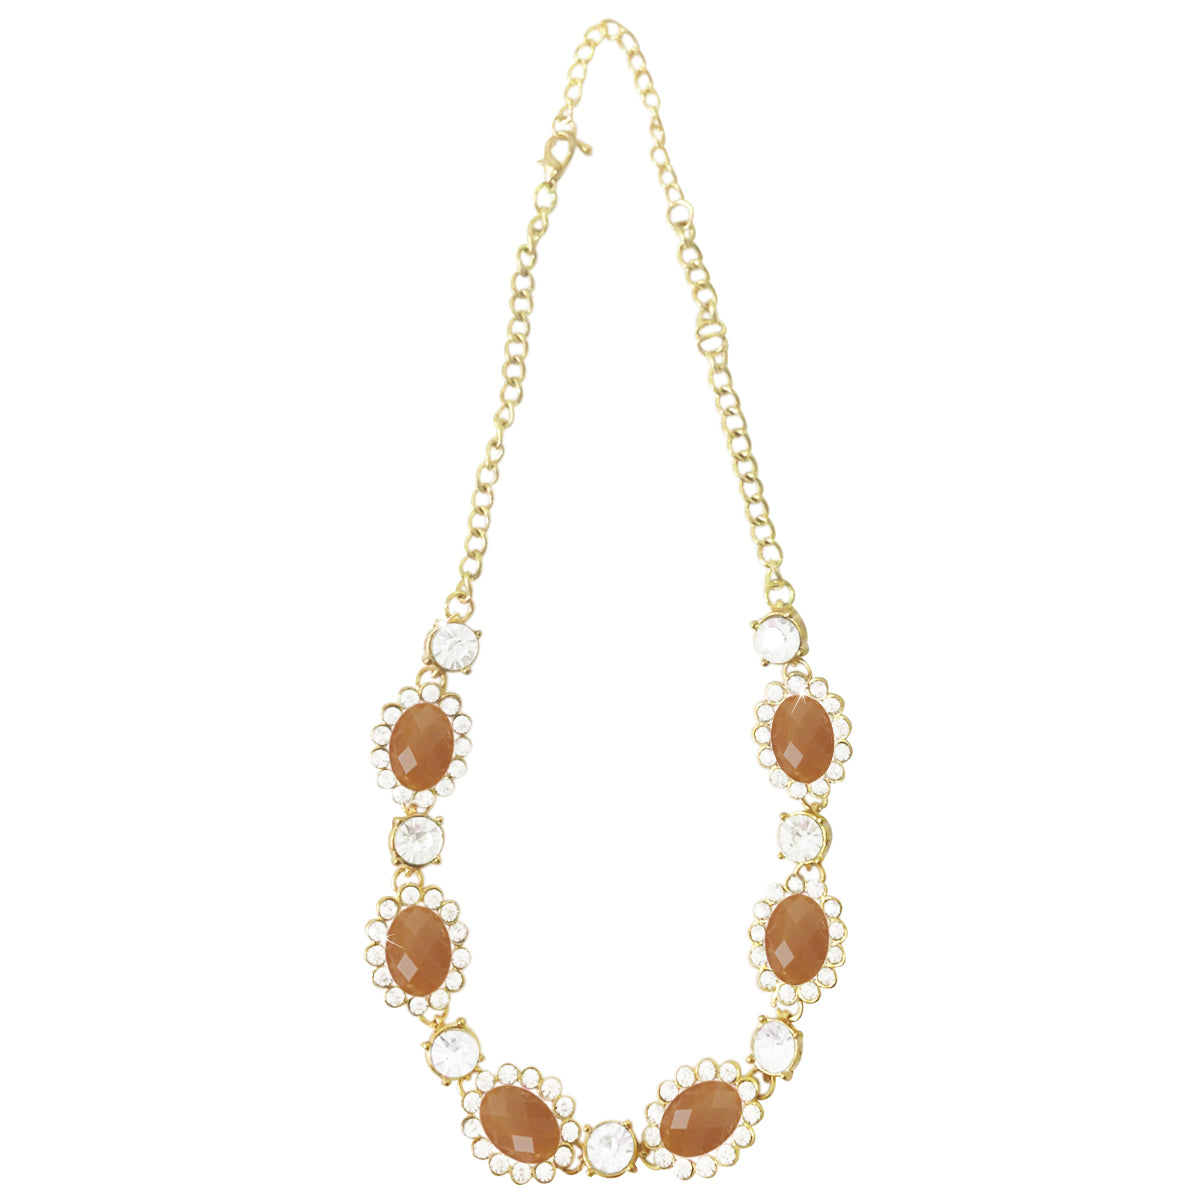 Wrapables Faceted Oval Gemstone and Crystal Necklace